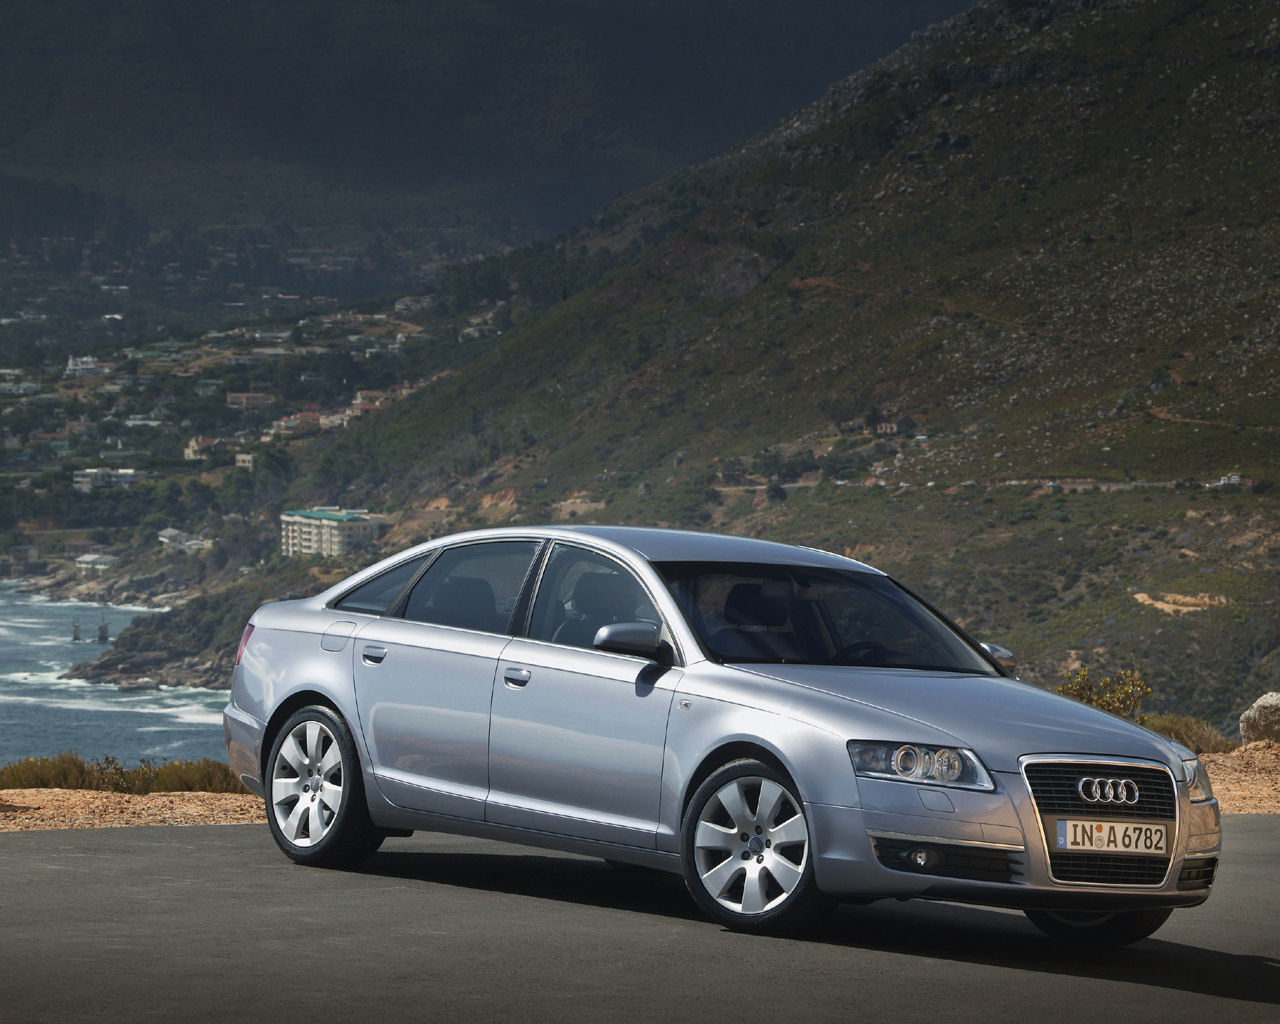 1280x1024 - Audi A6 Wallpapers 21